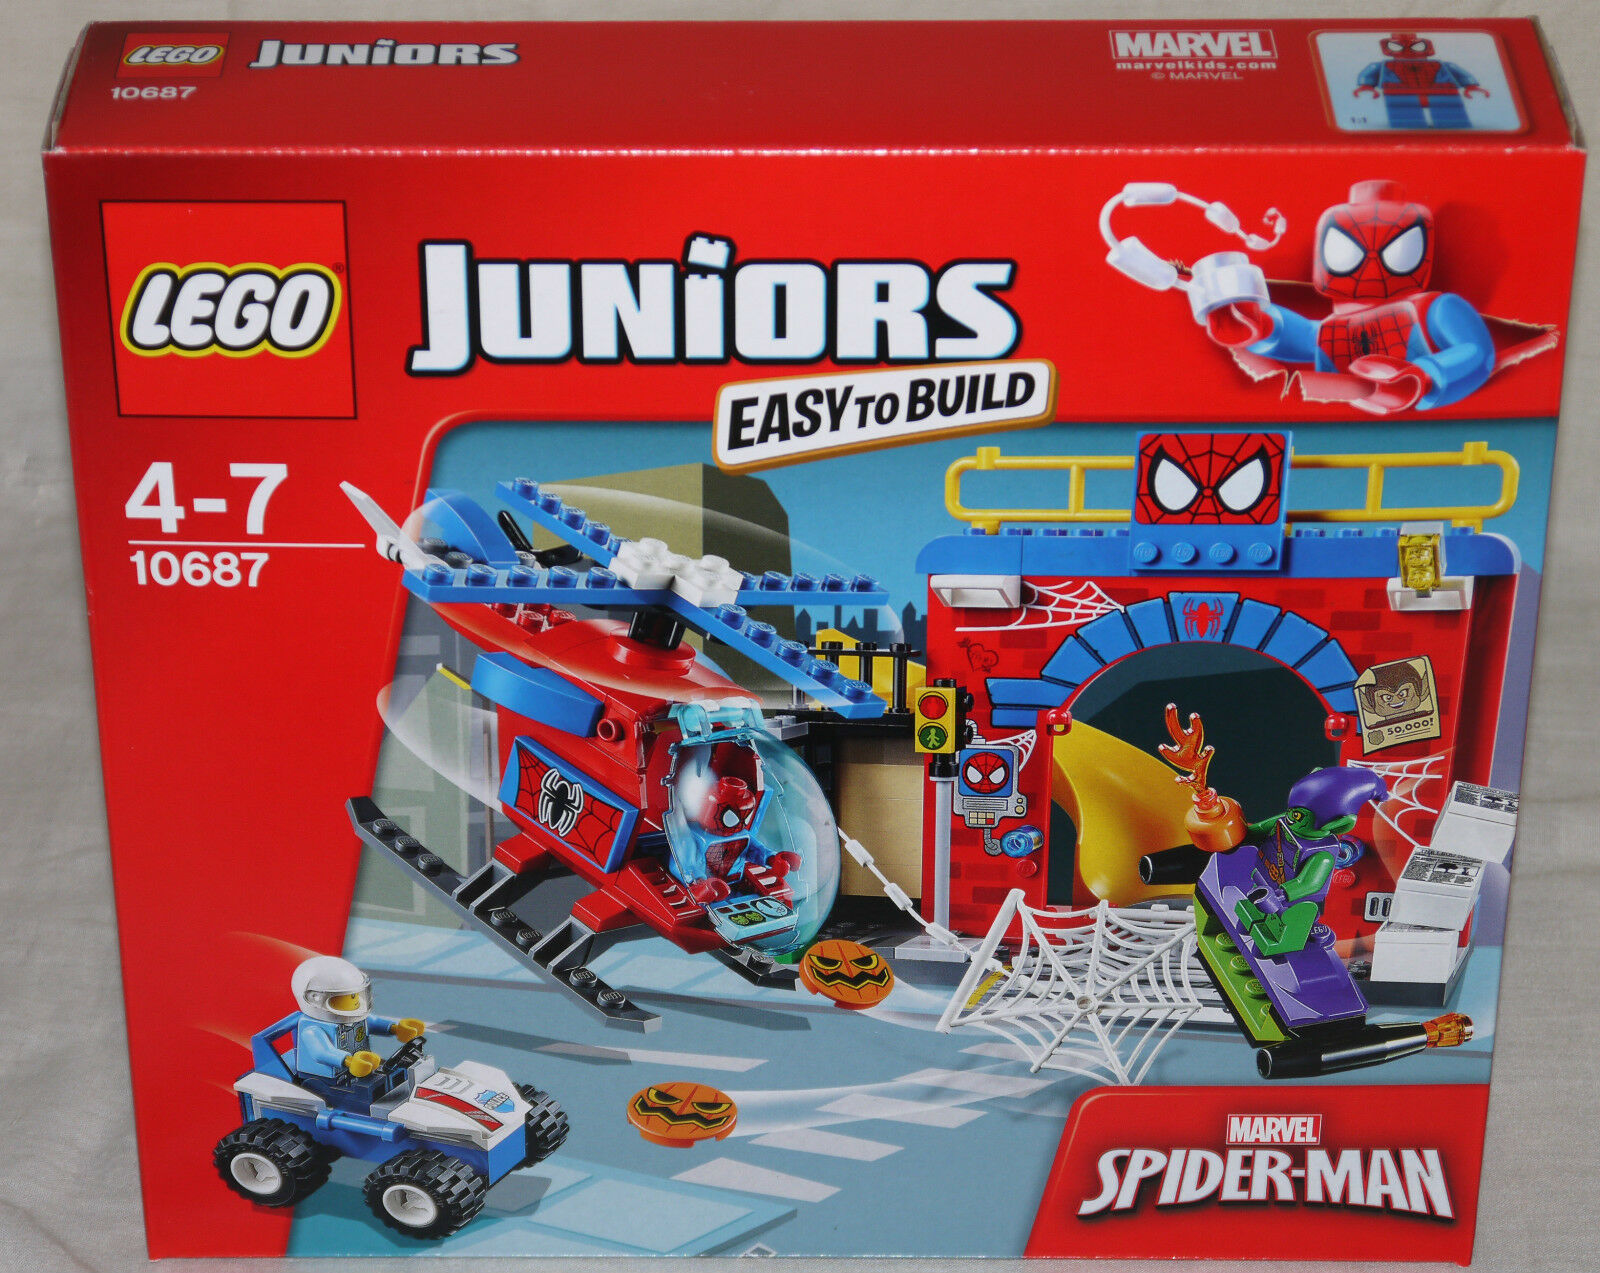 Lego 10687   SPIDER-MAN HIDEOUT - Brand New   Juniors   Easy to Build